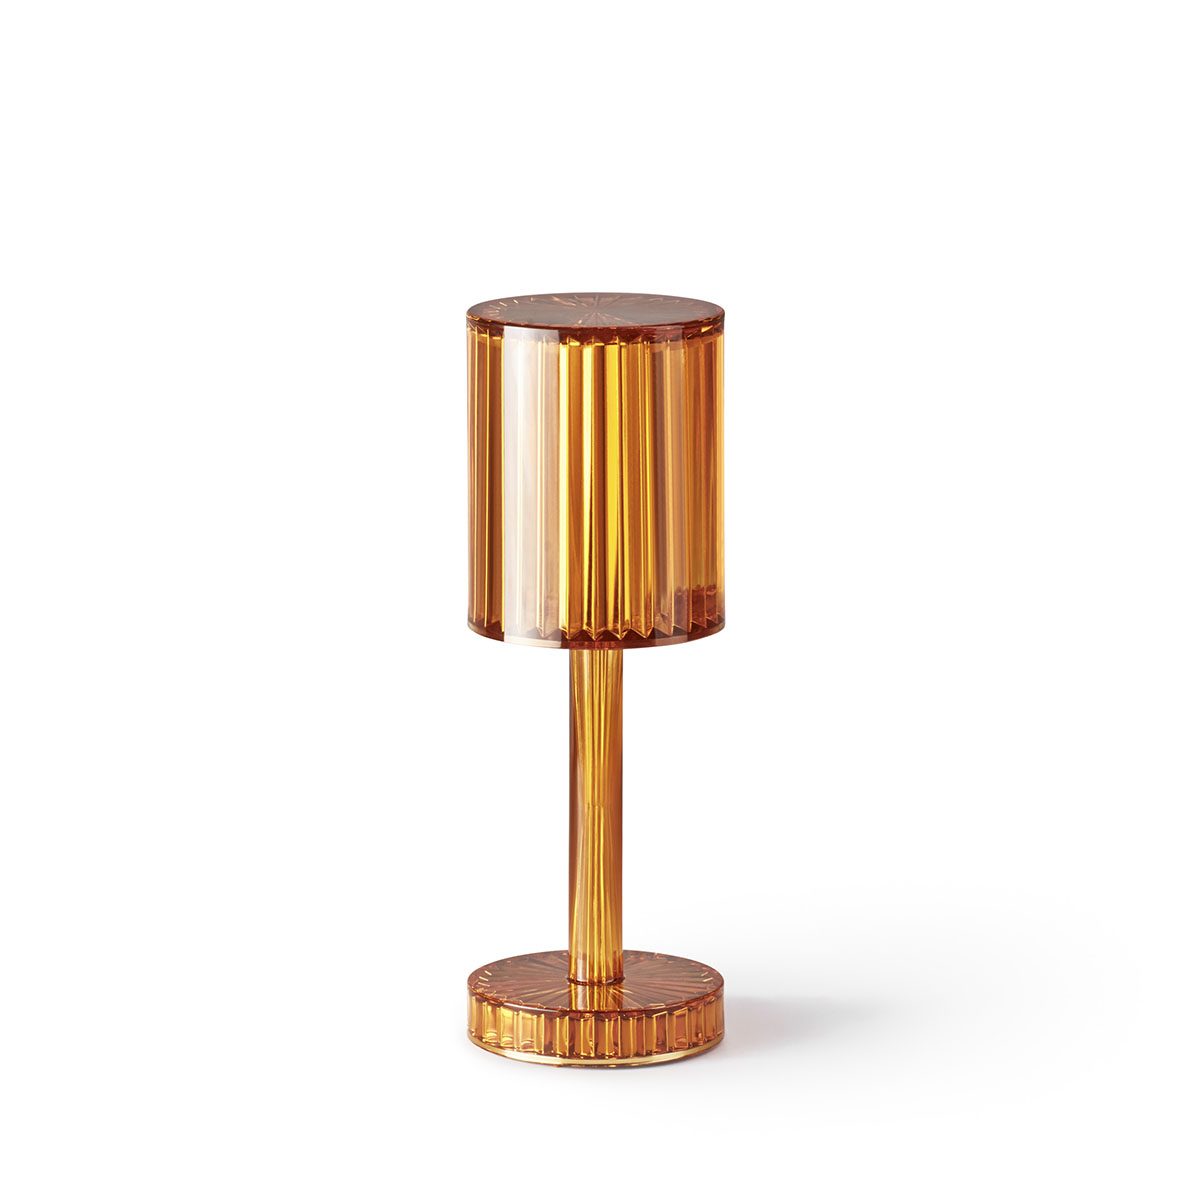 GATSBY_VONDOM_TABLE_LAMP_RAMON_ESTEVE_LUMINARIA_MESA_LAMPARA_3